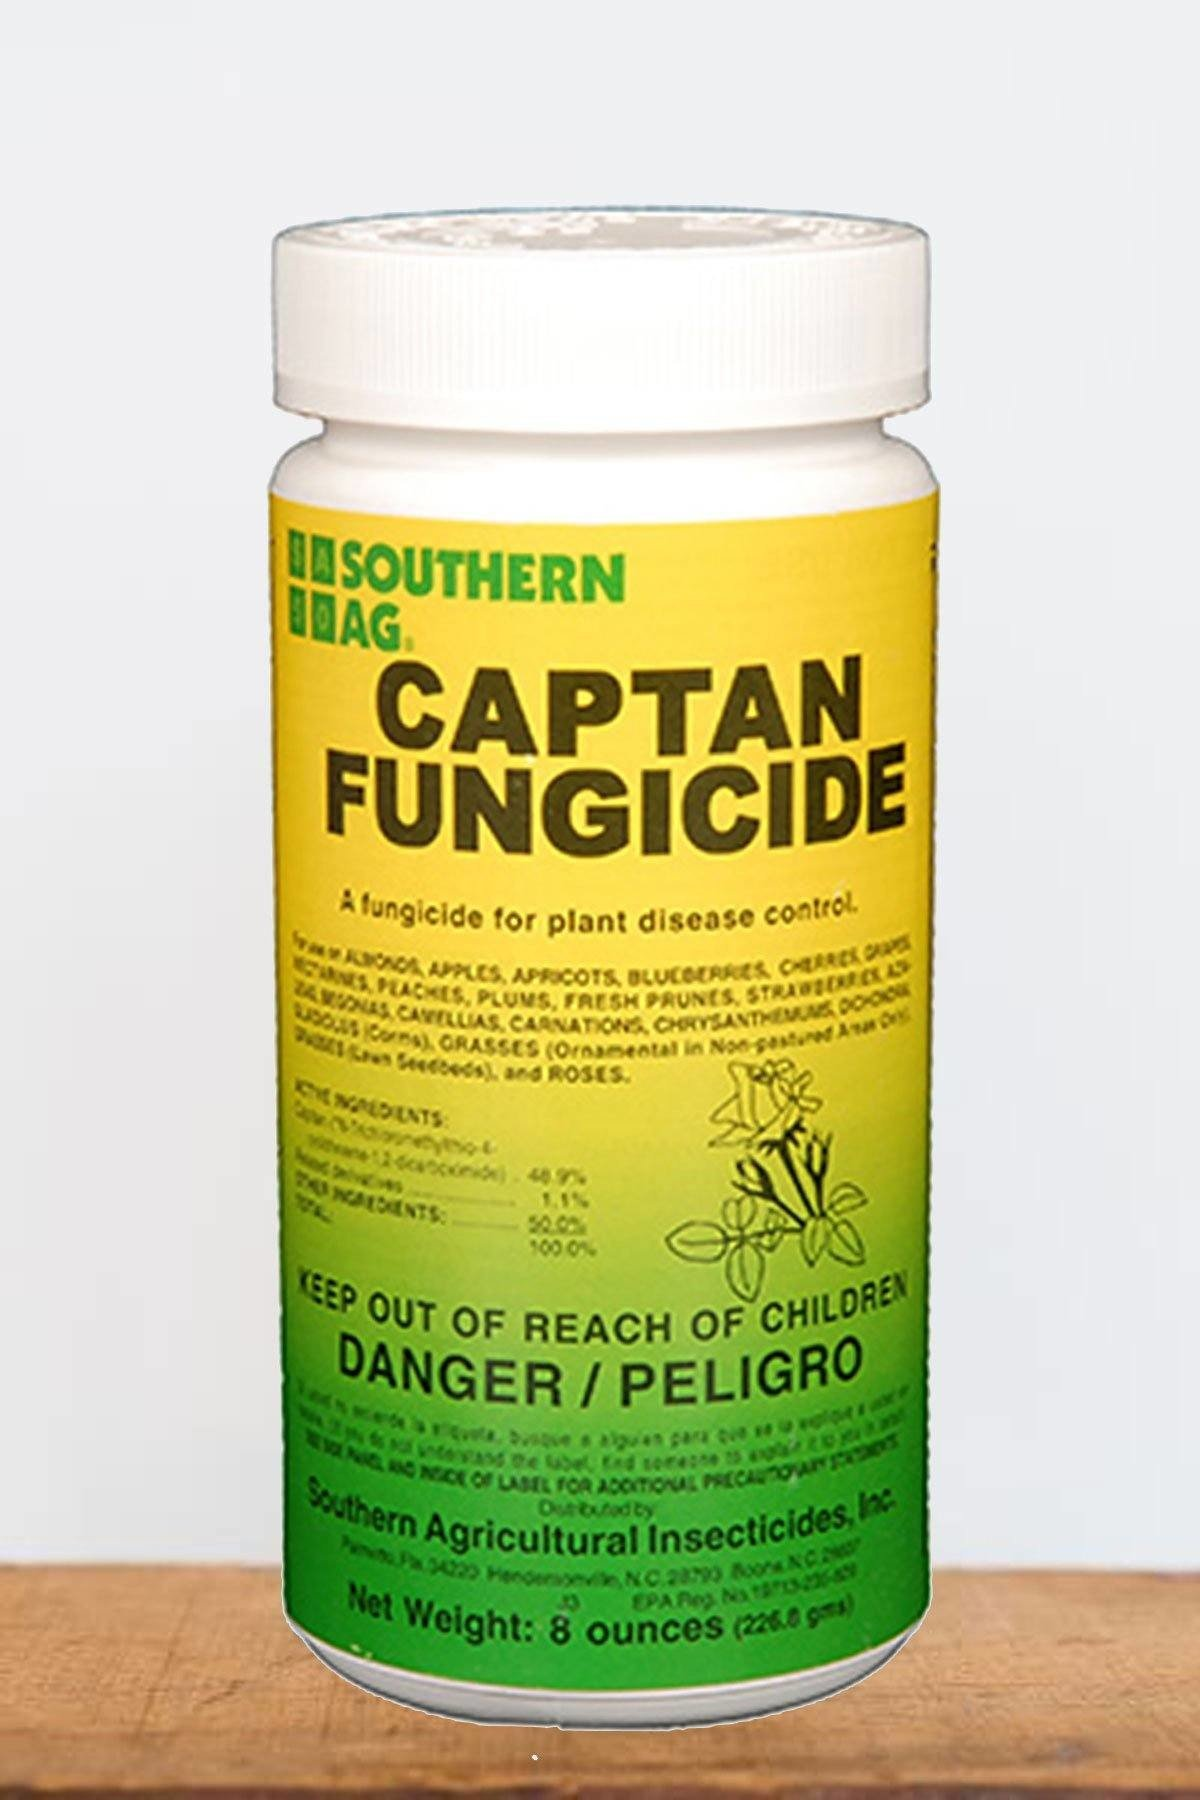 Southern Ag Captan 50% WP Fungicide, 8 Oz